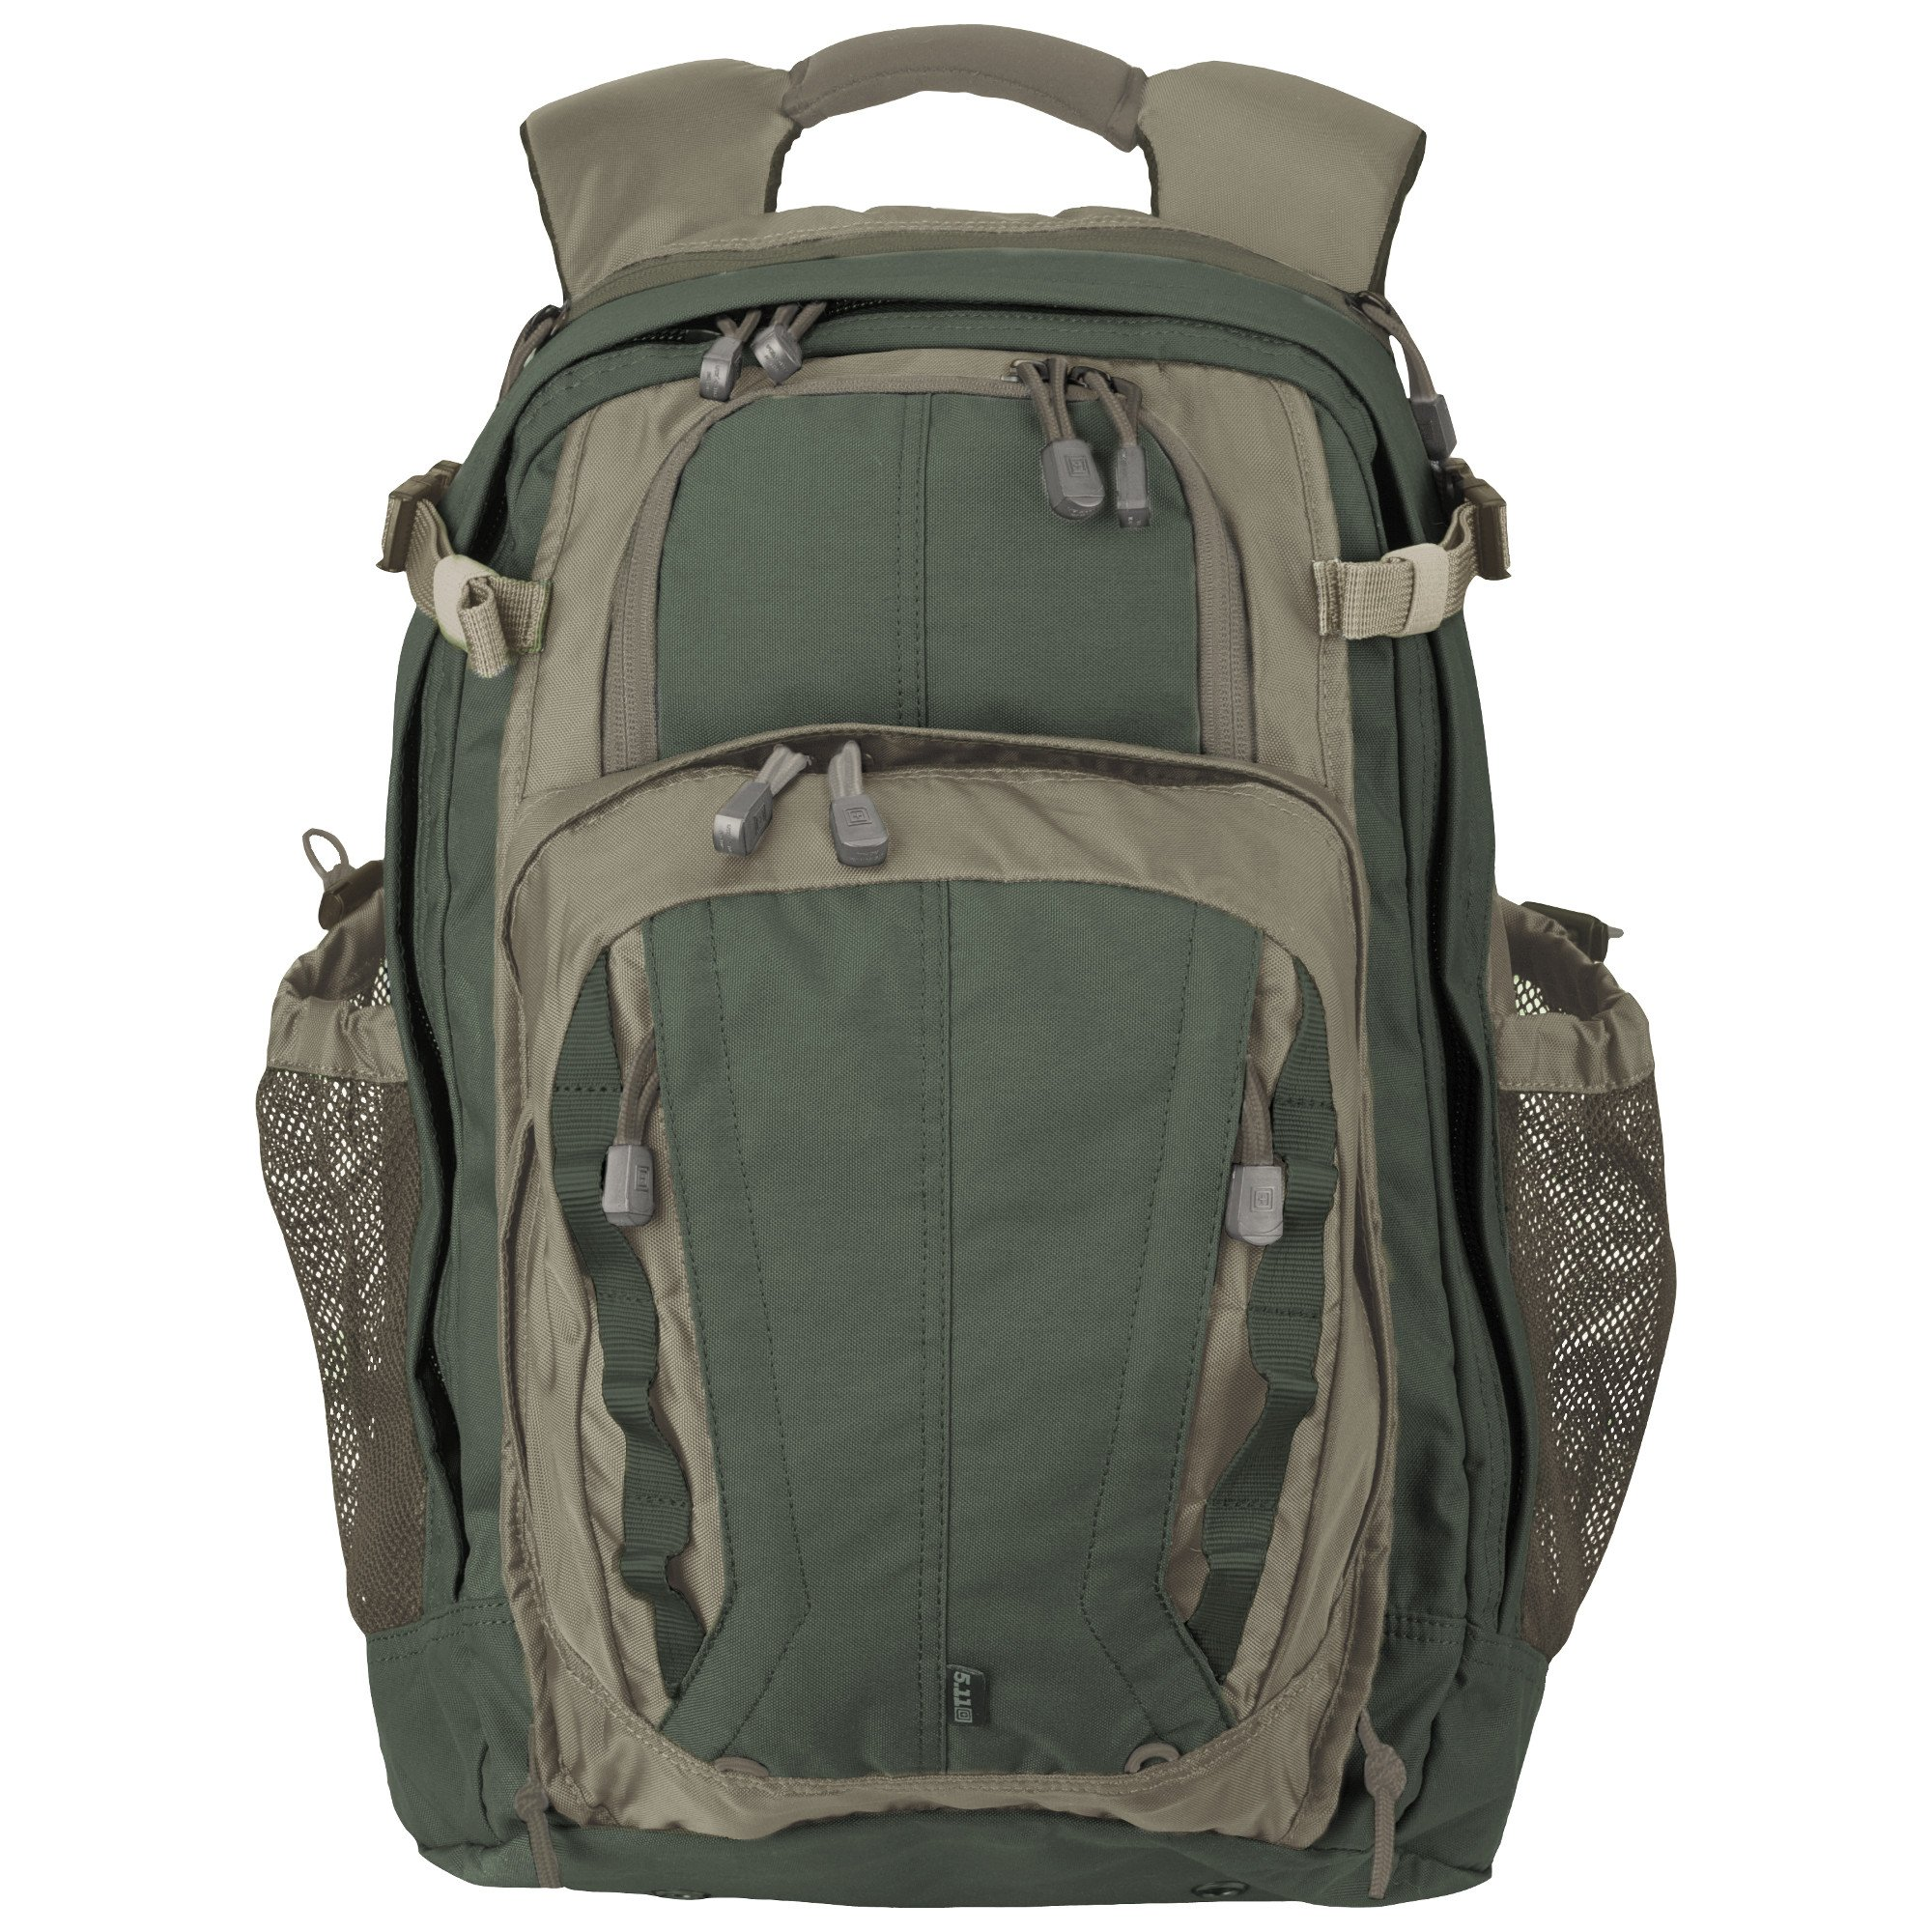 5.11 COVRT18 Tactical Covert Military Backpack, Large Assault Rucksack Pack, Style 56961, Green/Brown by 5.11